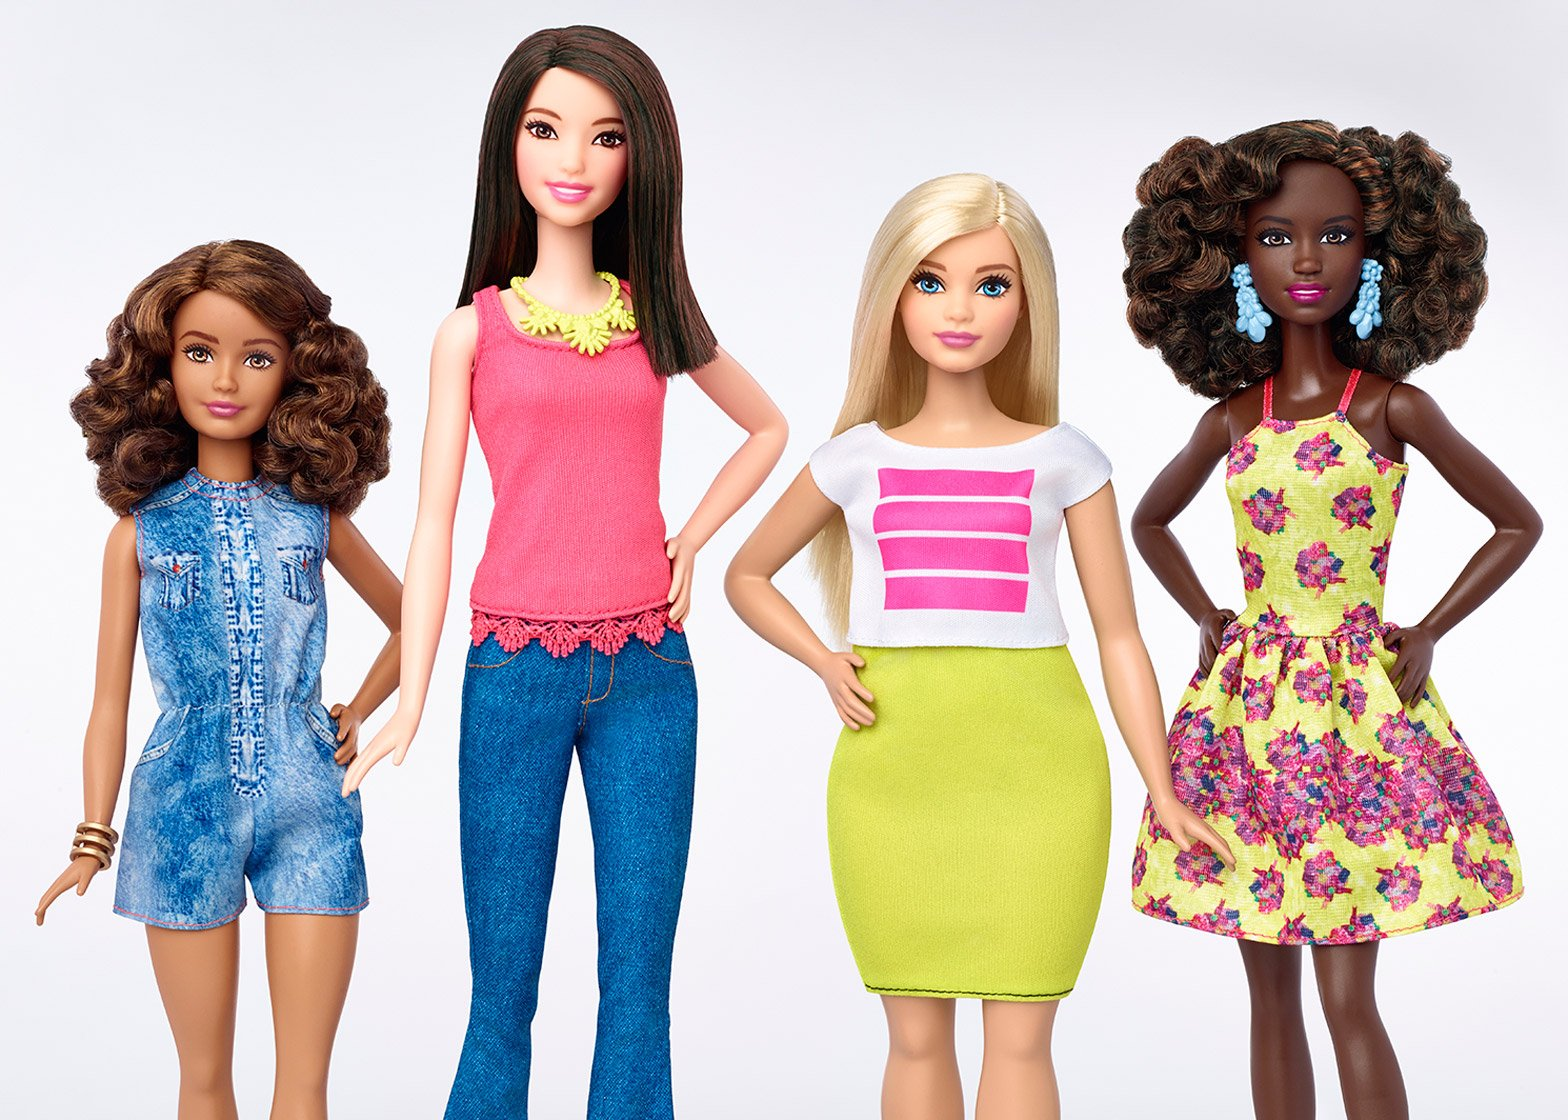 Barbie dolls now available in four body types